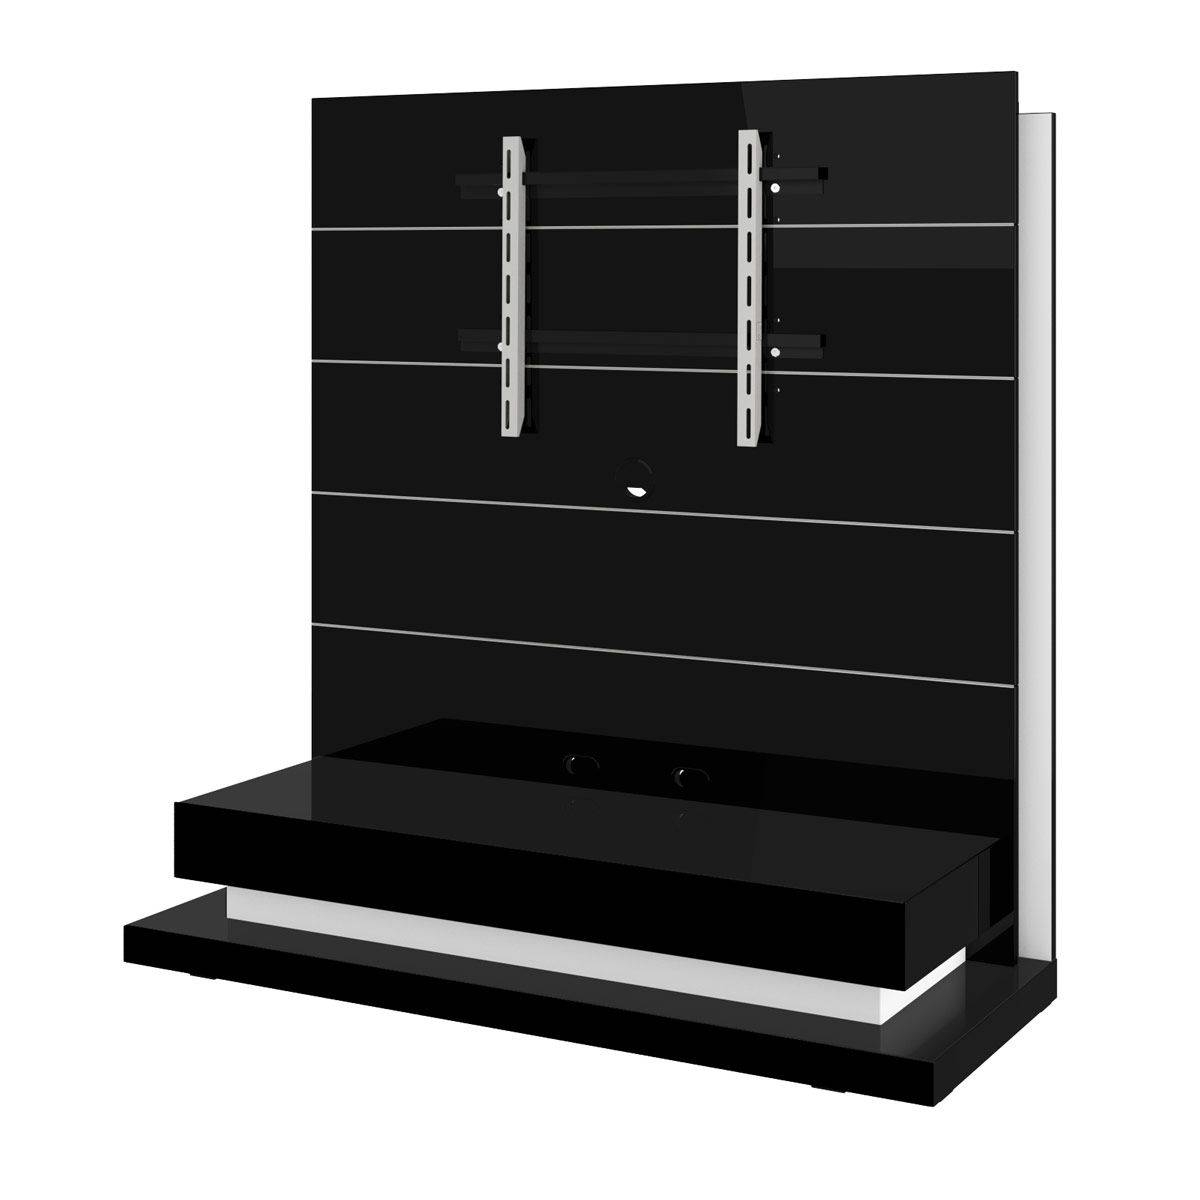 Standing Panorama Lux Black Tv Stand with Panorama Tv Stands (Image 12 of 16)